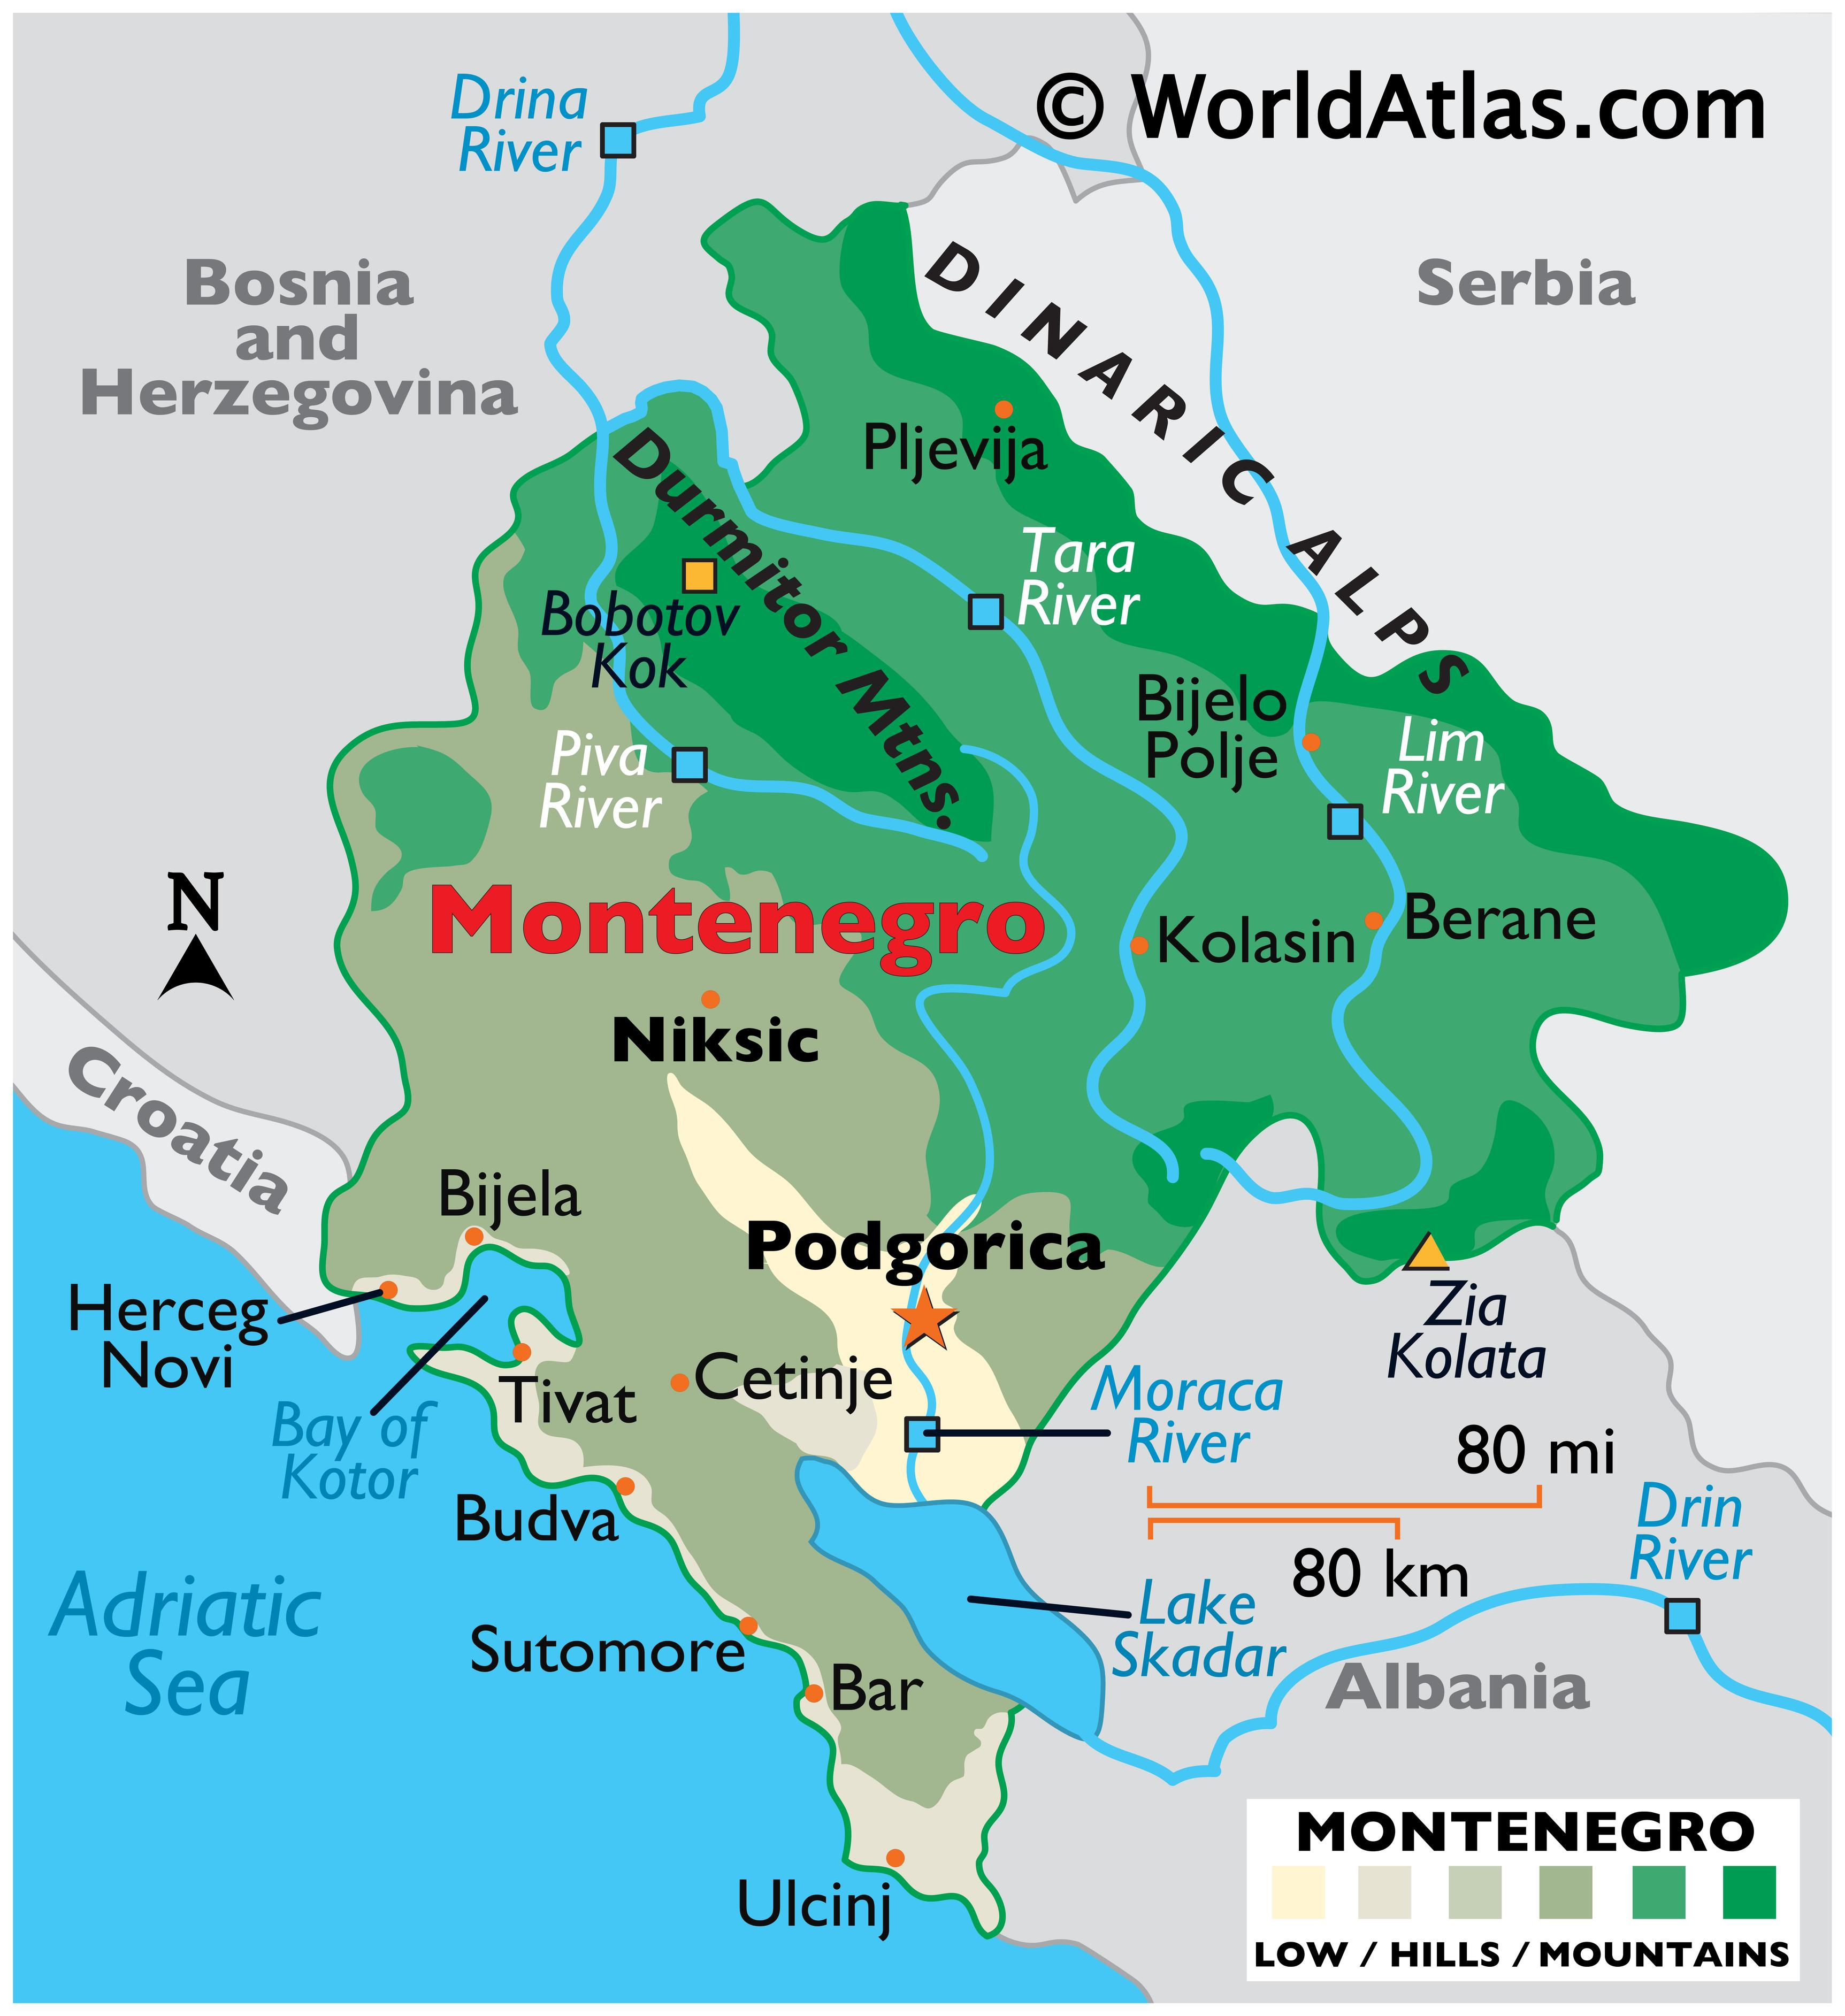 Physical Map of Montenegro showing relief, major mountain ranges, rivers, Lake Skadar, important cities, bordering countries, etc.